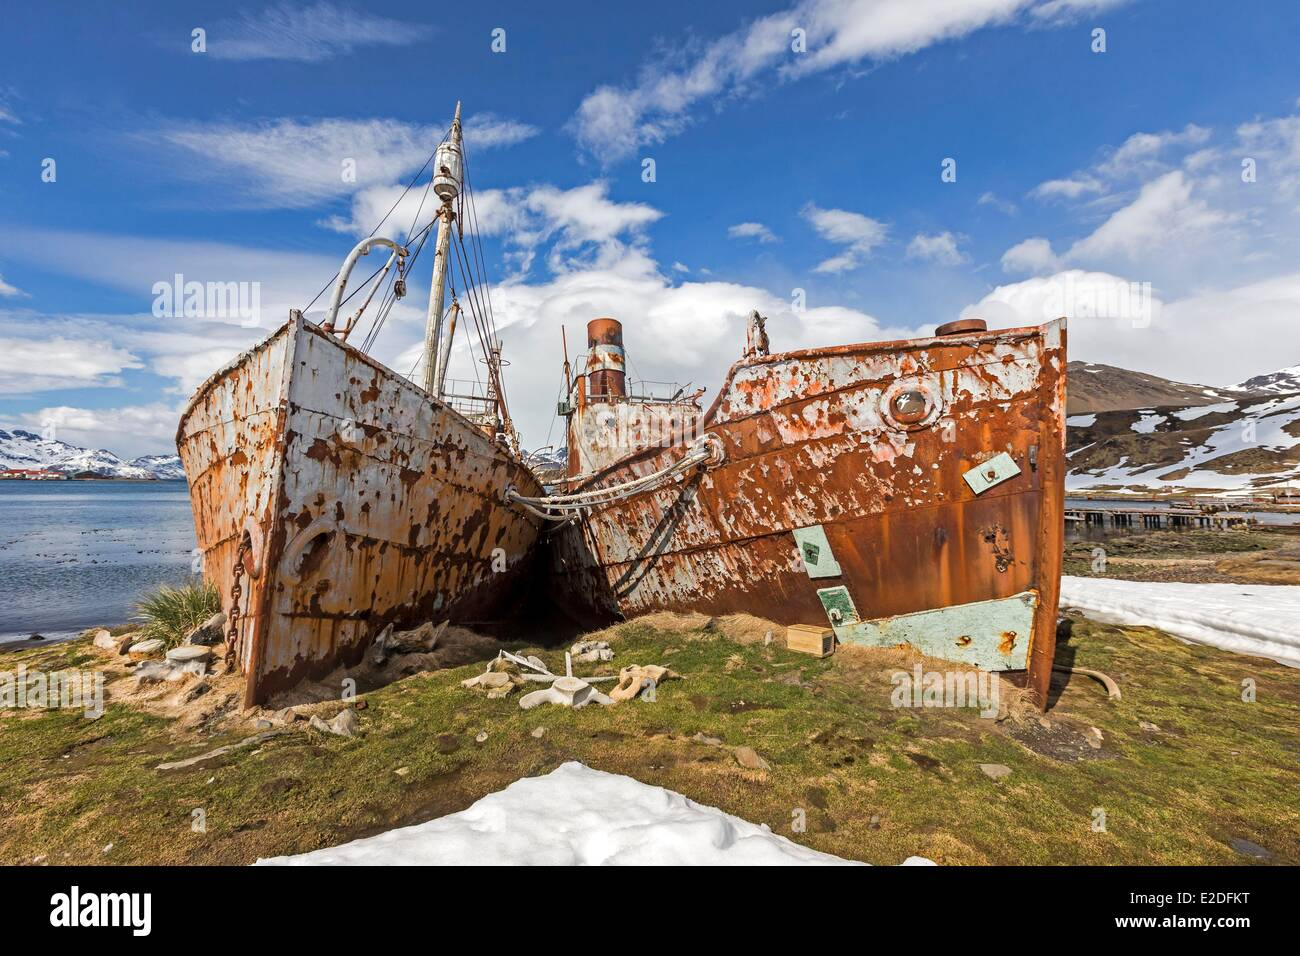 Antarctic, South Georgia Island, Whale station of Grytviken, remainings of the buildings - Stock Image